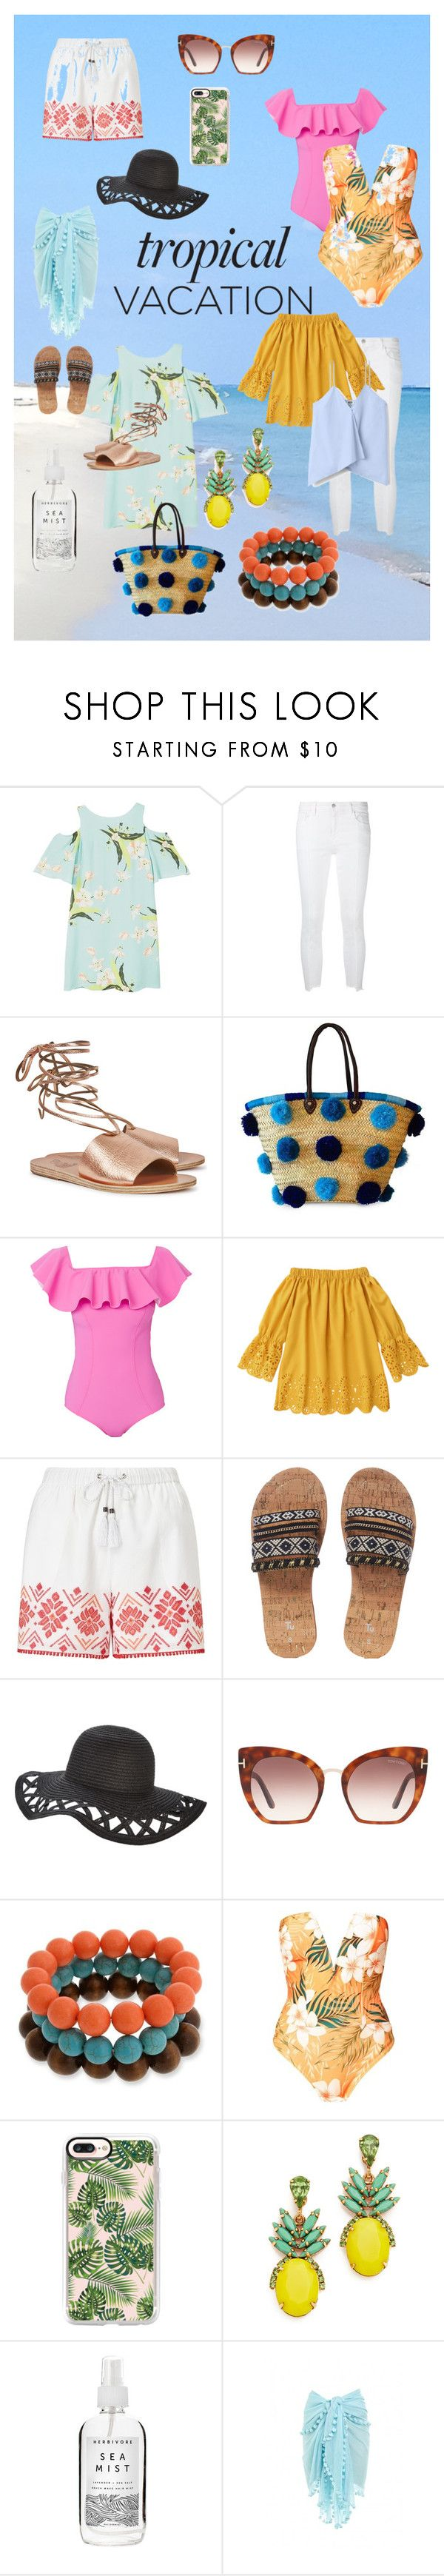 """""""Untitled #114"""" by jessiefine24 ❤ liked on Polyvore featuring MANGO, J Brand, Ancient Greek Sandals, Soeur Du Maroc, Lisa Marie Fernandez, Somerset by Alice Temperley, Tom Ford, Erica Lyons, Casetify and Elizabeth Cole"""